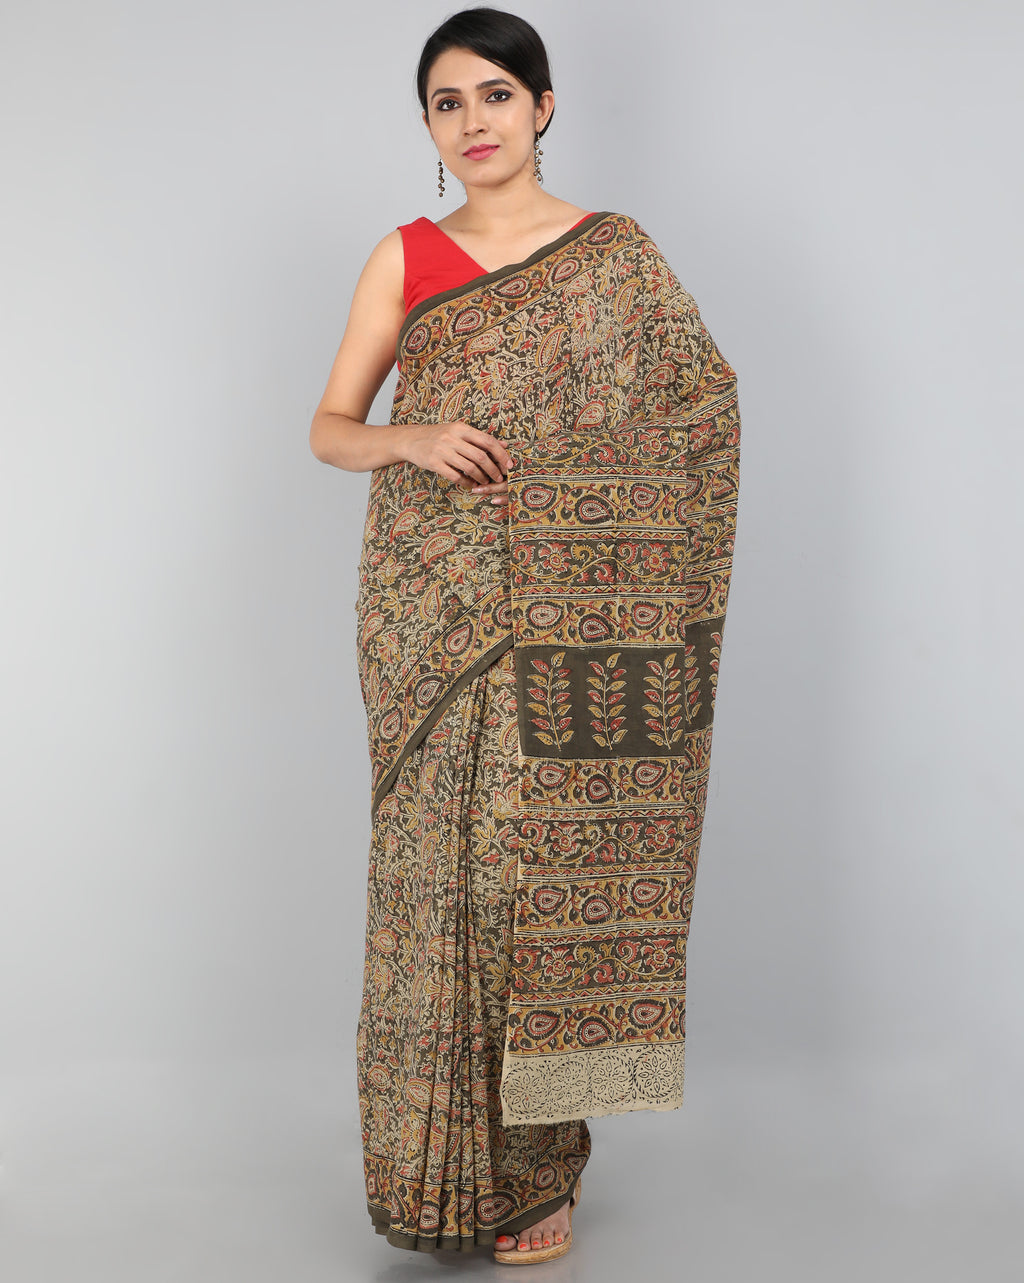 Pedana Kalamkari - Hand Block Printed - Mul Cotton Saree 09